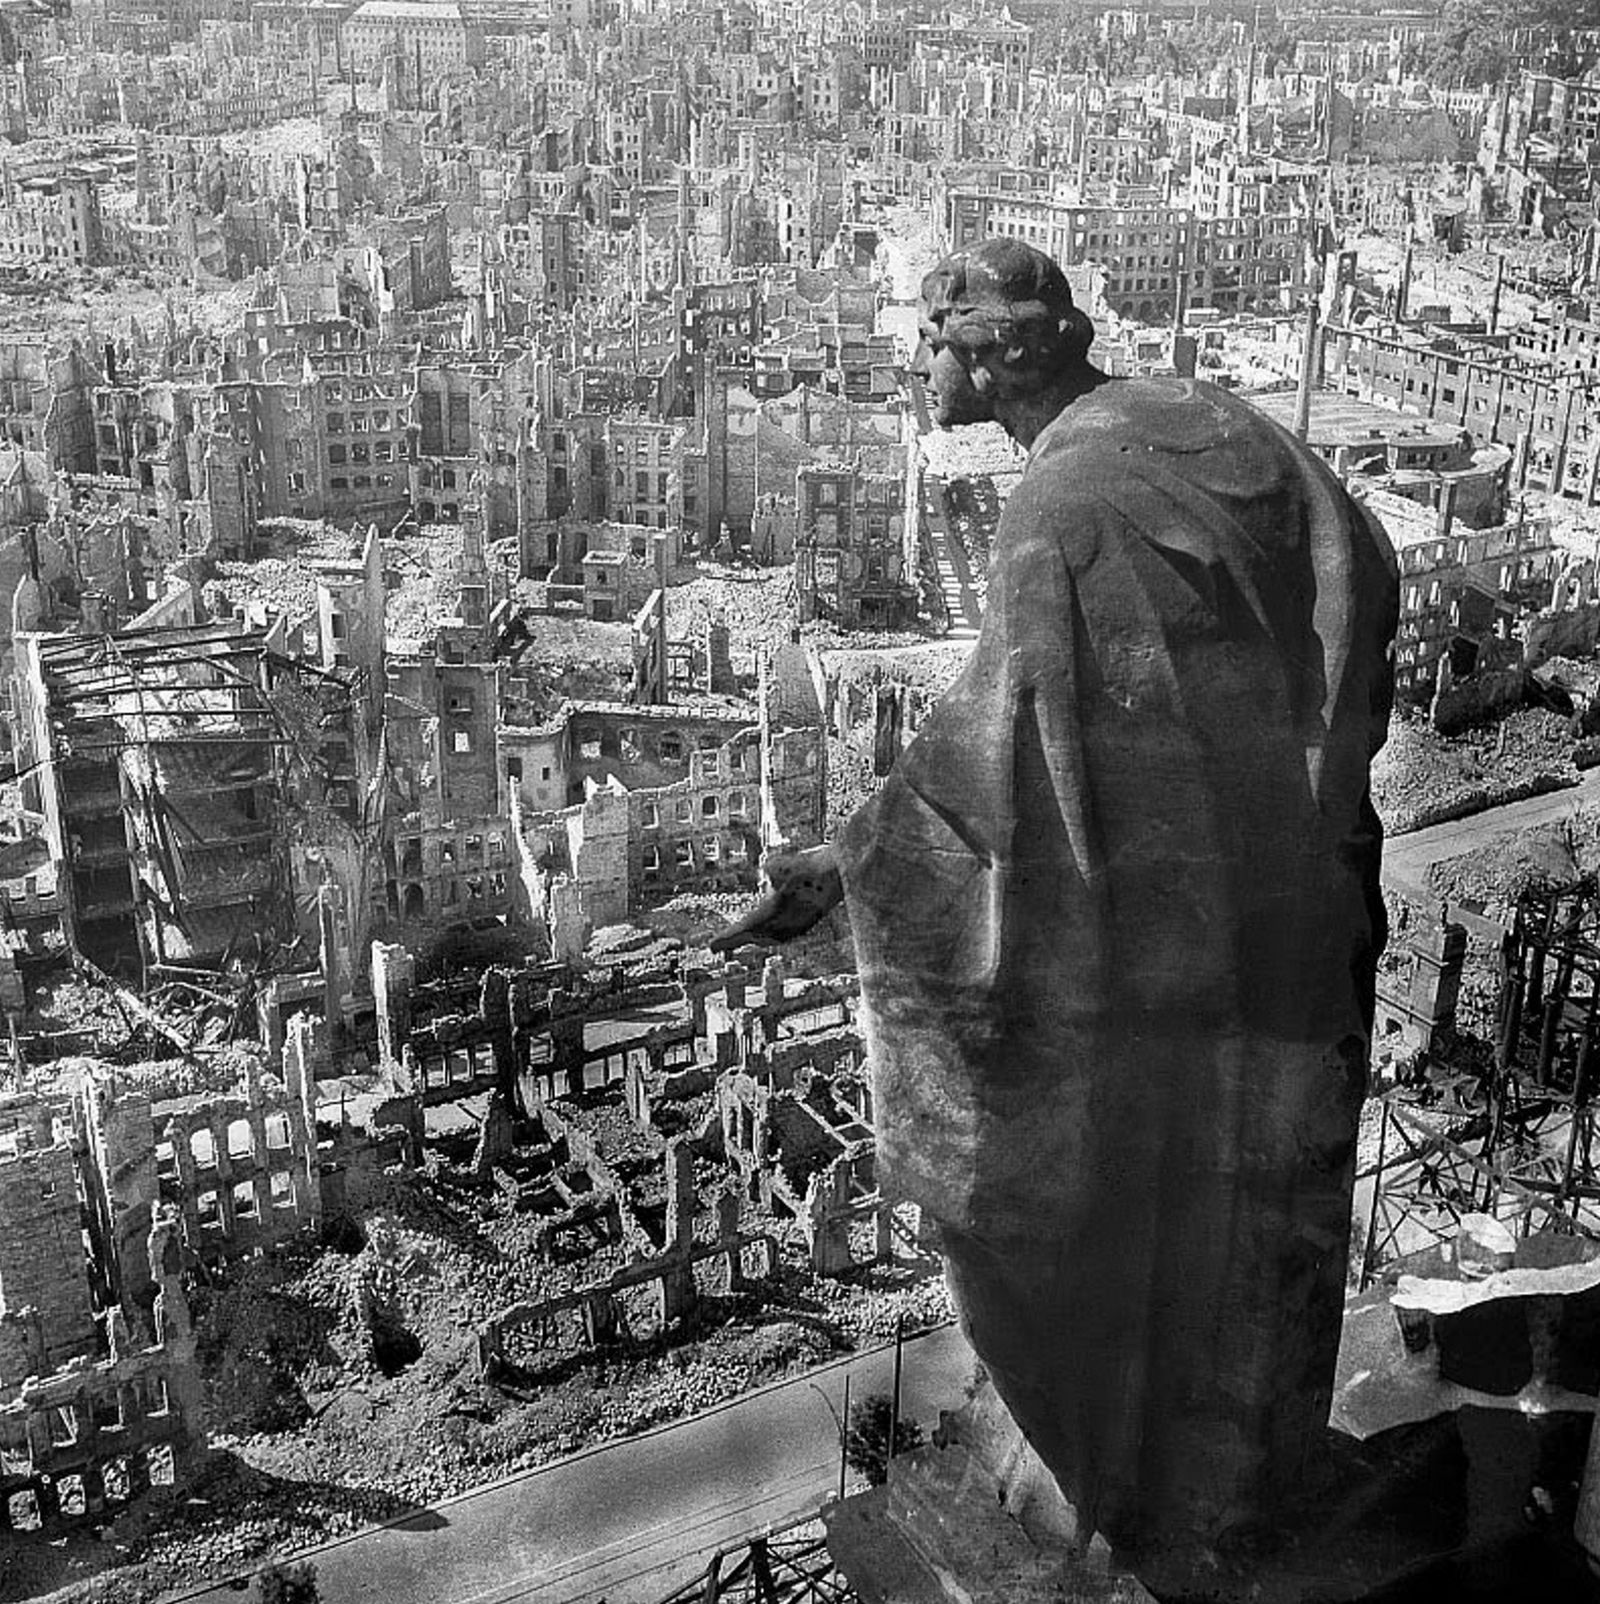 Bombardierung Dresden - The ruins of the German city of Dresden after allied air raids.